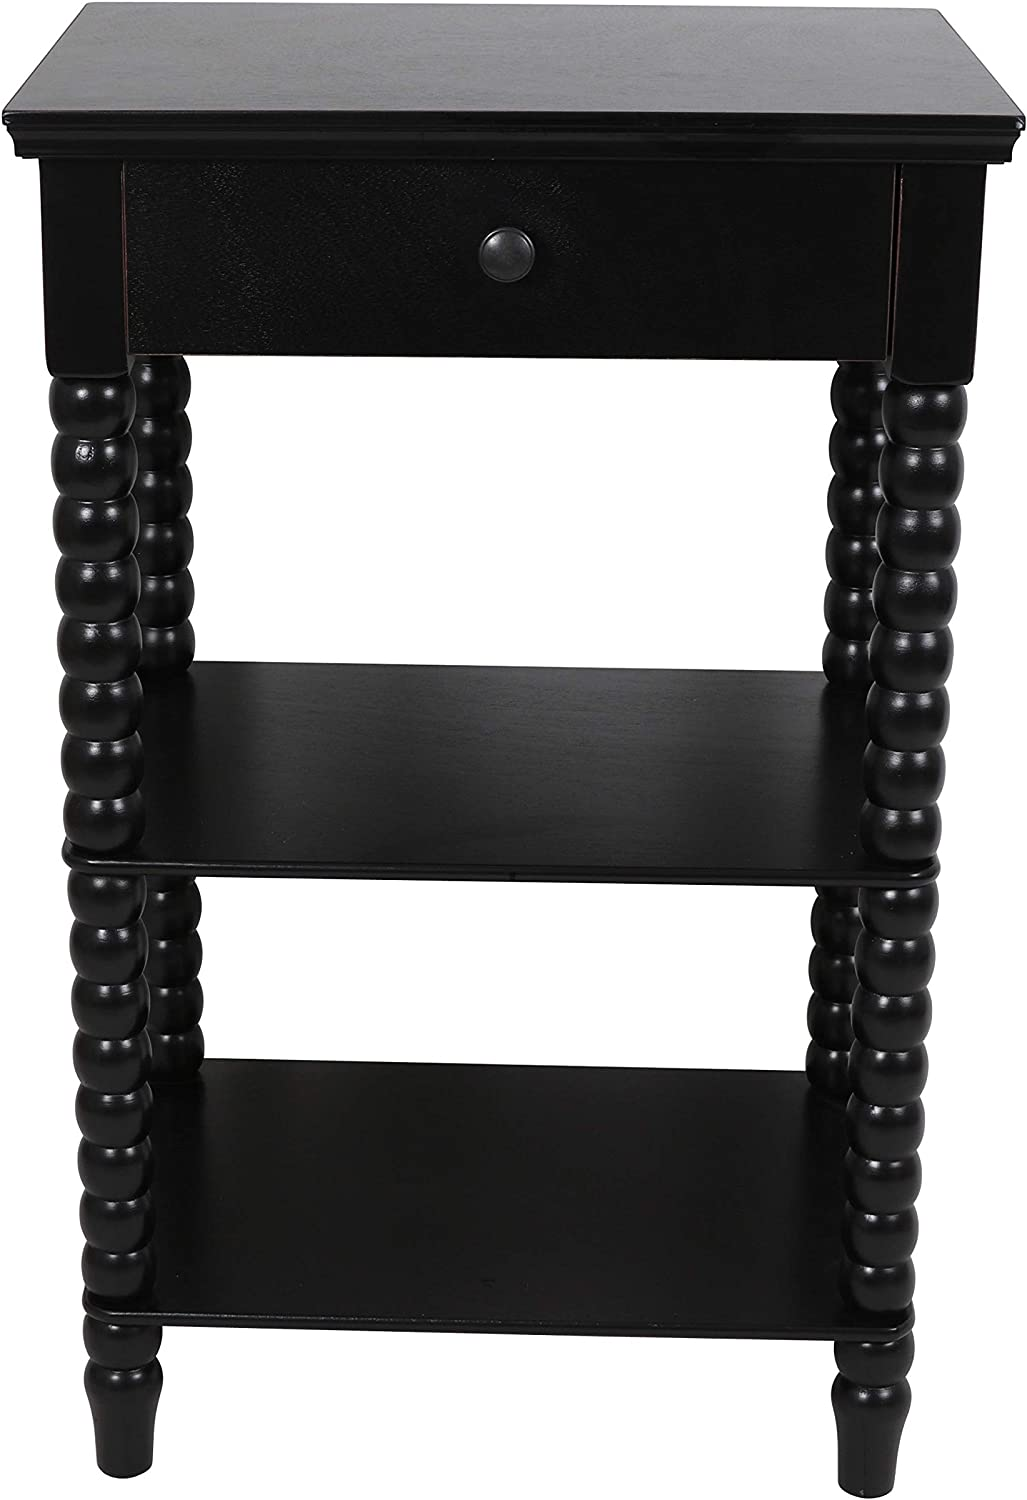 Decor Therapy Spindle Side Table, 19x14x30, Black